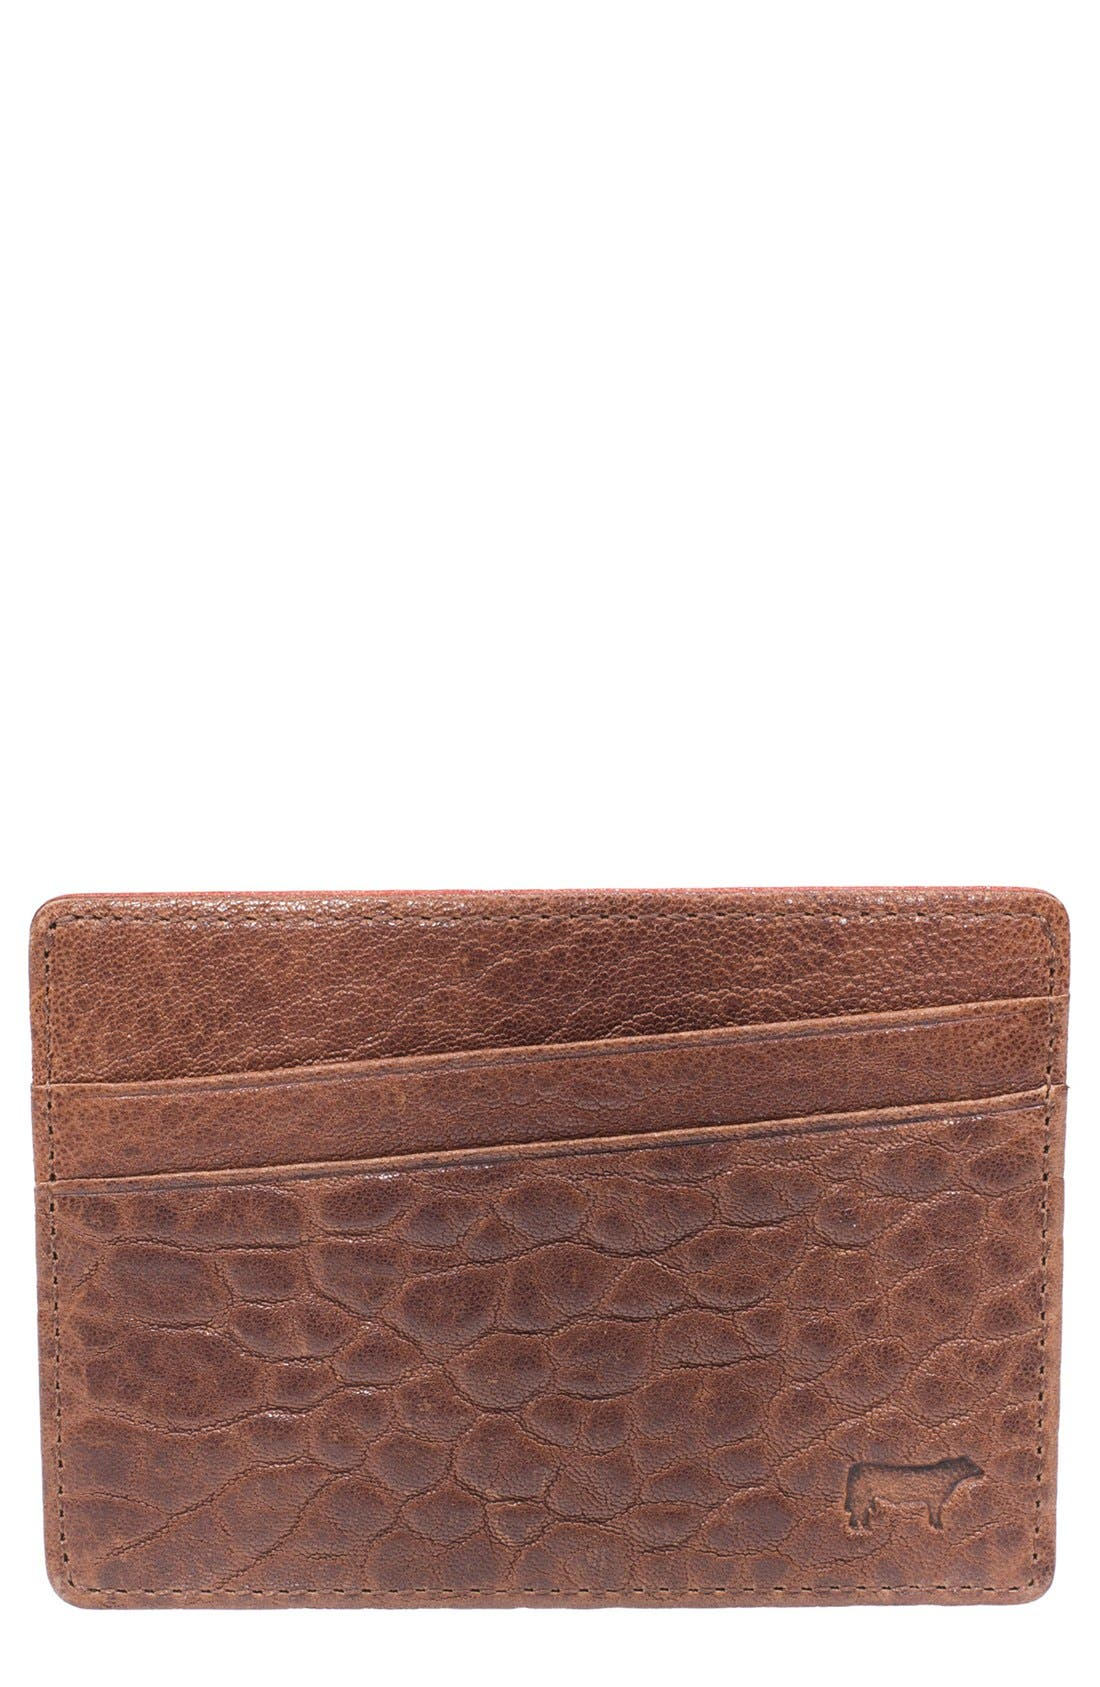 Will Leather Goods 'Quip' Leather Card Case